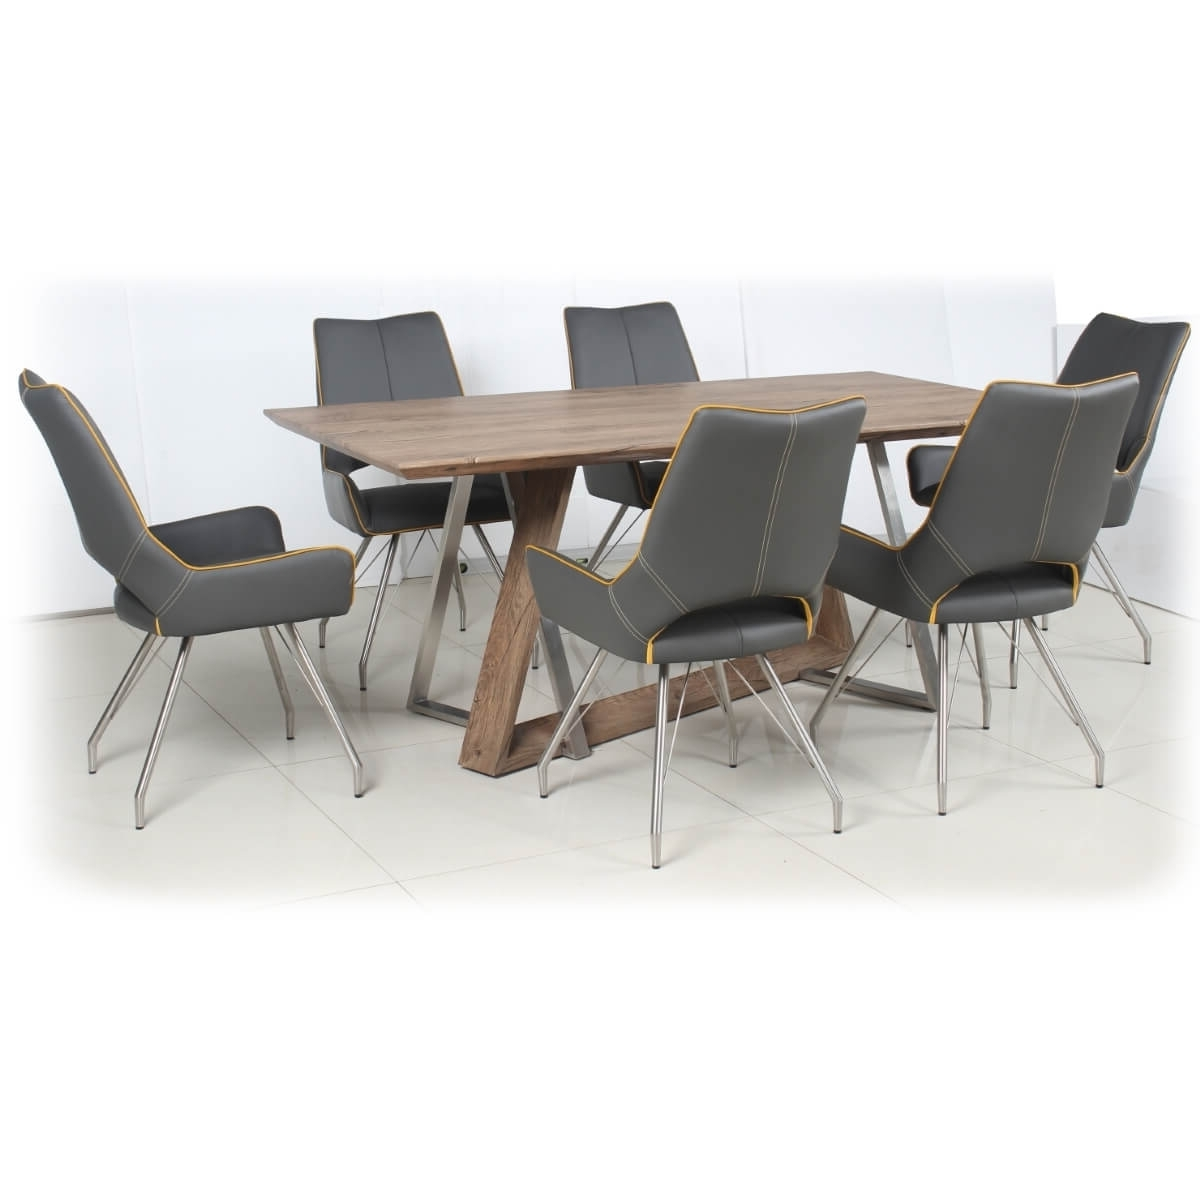 Trendy Dining Set – Industrial Style Wood Dining Table And 6 Grey Dining Pertaining To Industrial Style Dining Tables (View 25 of 25)